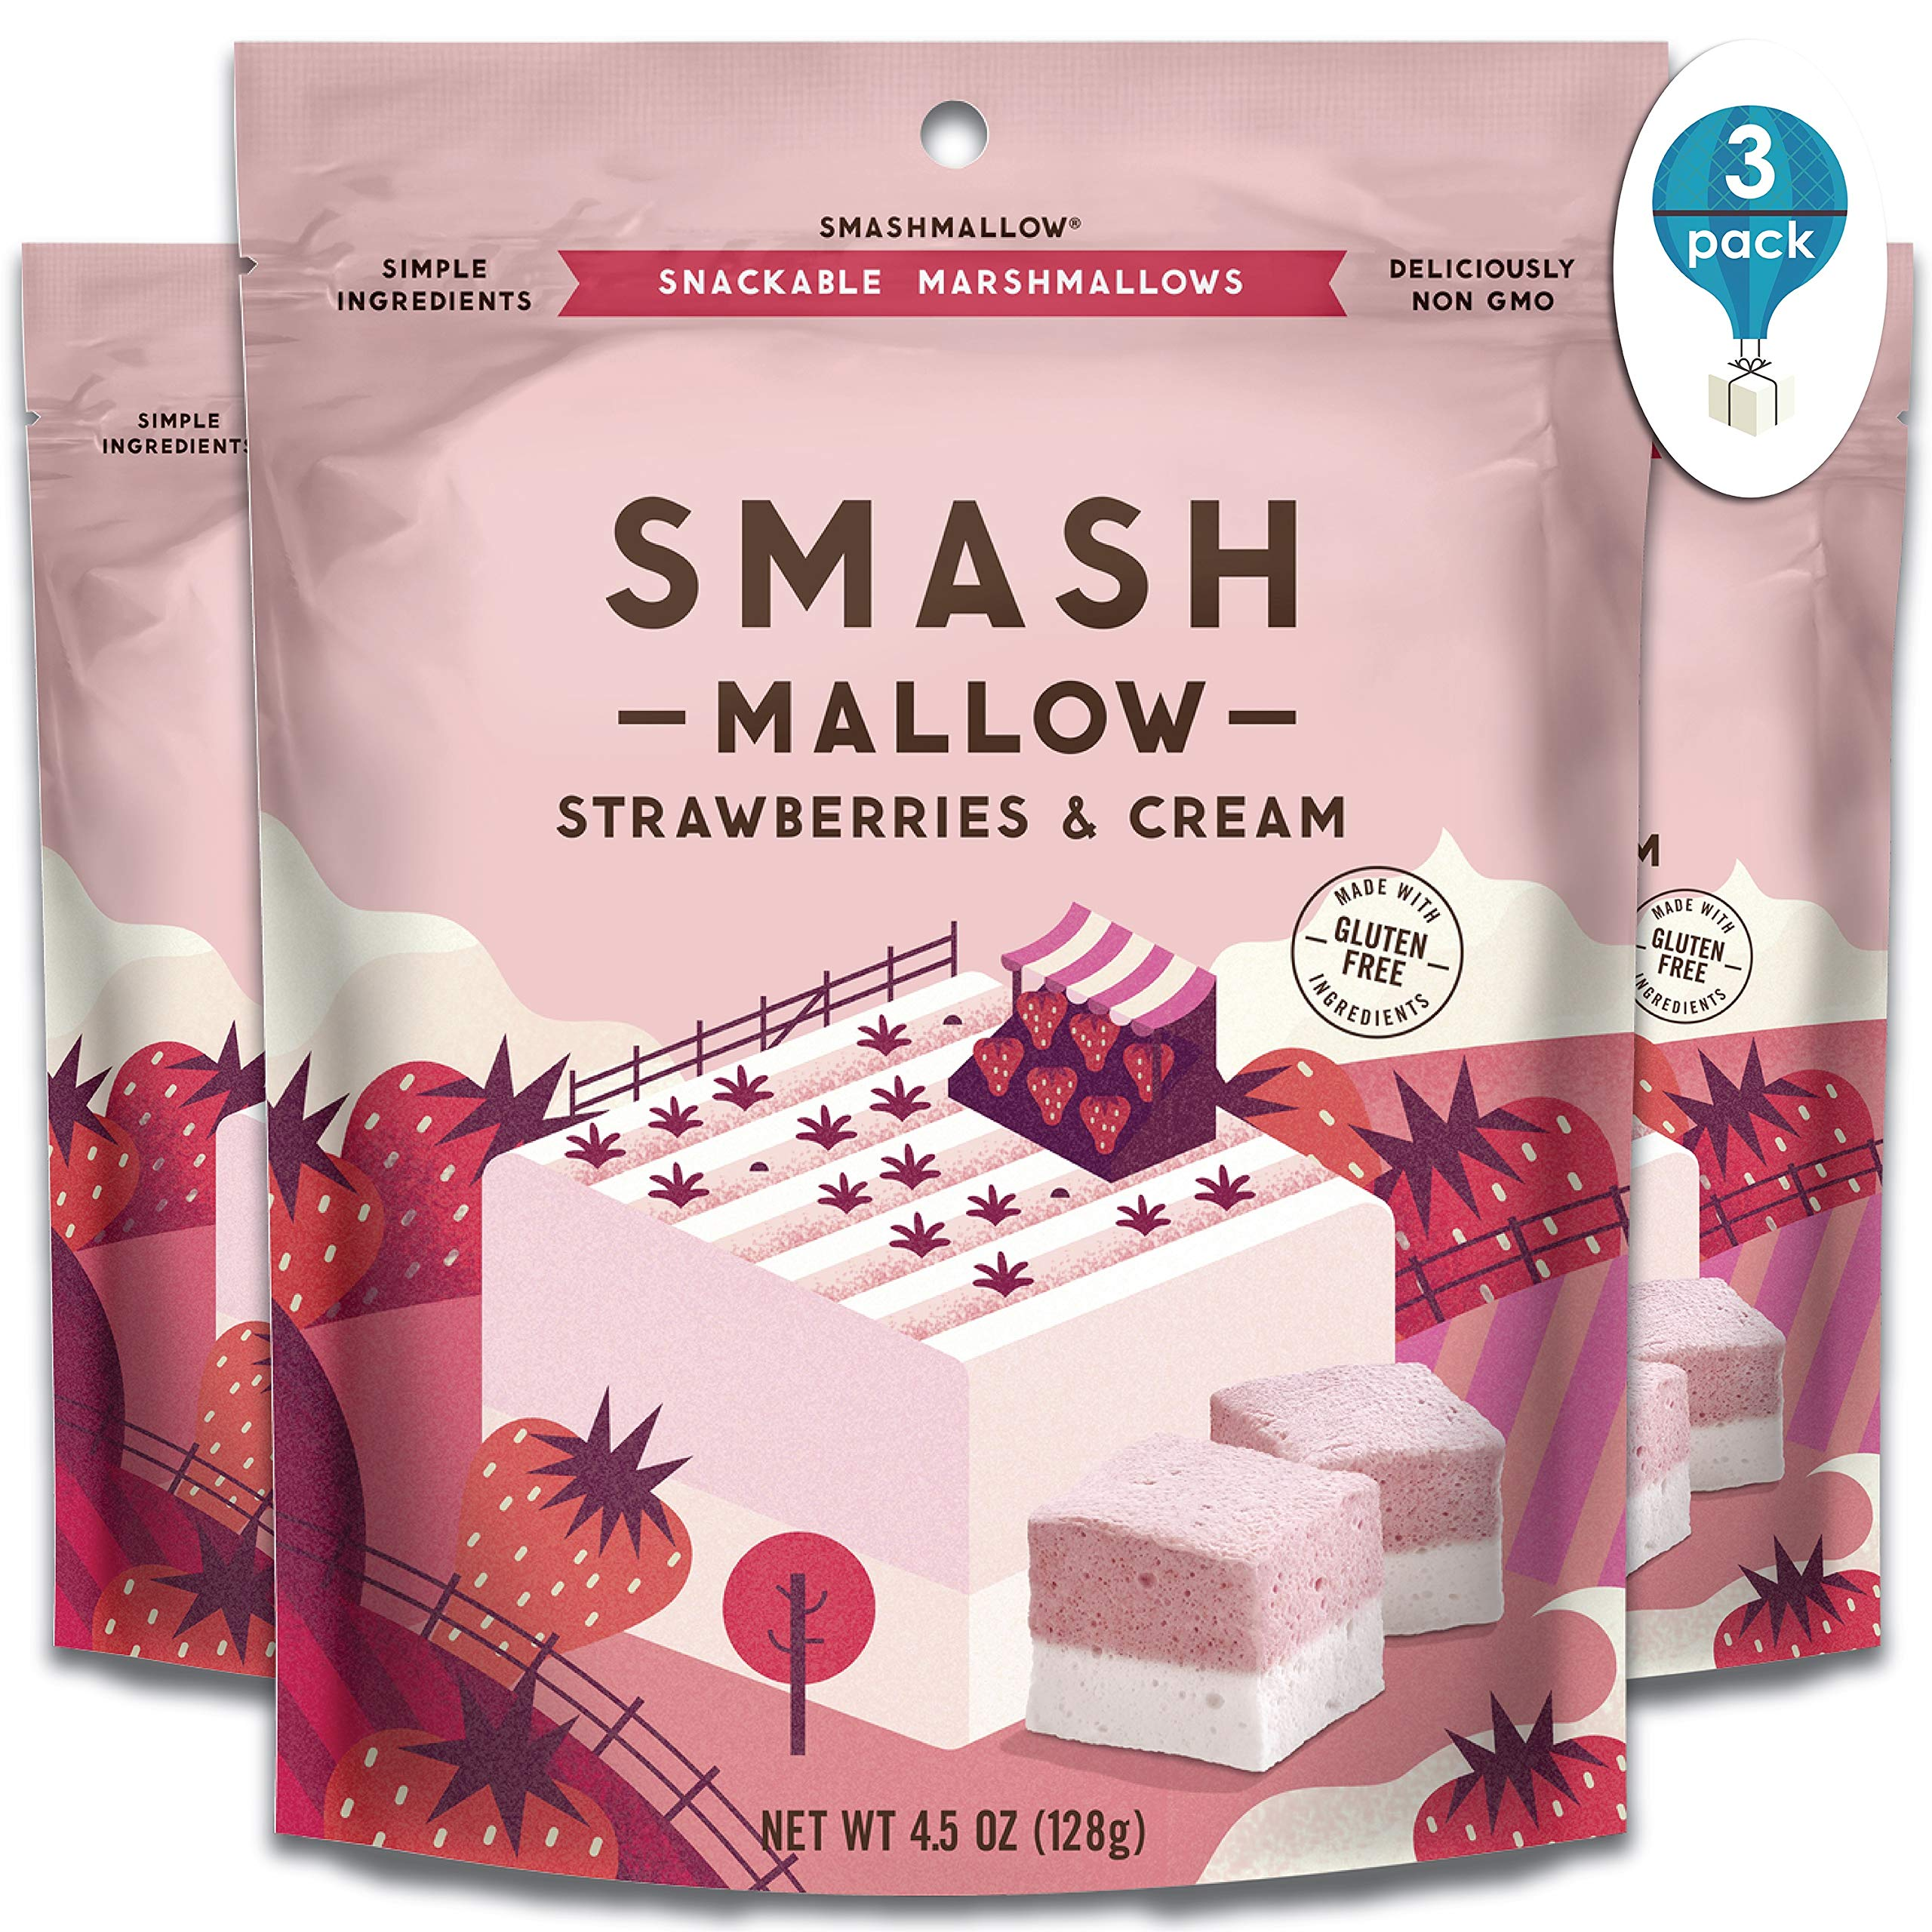 Strawberries & Cream By SmashMallow | Snackable Marshmallows | Non-Gmo | Organic Cane Sugar | 100 Calorie | Pack Of 3 (4.5 Oz) by Smashmallow